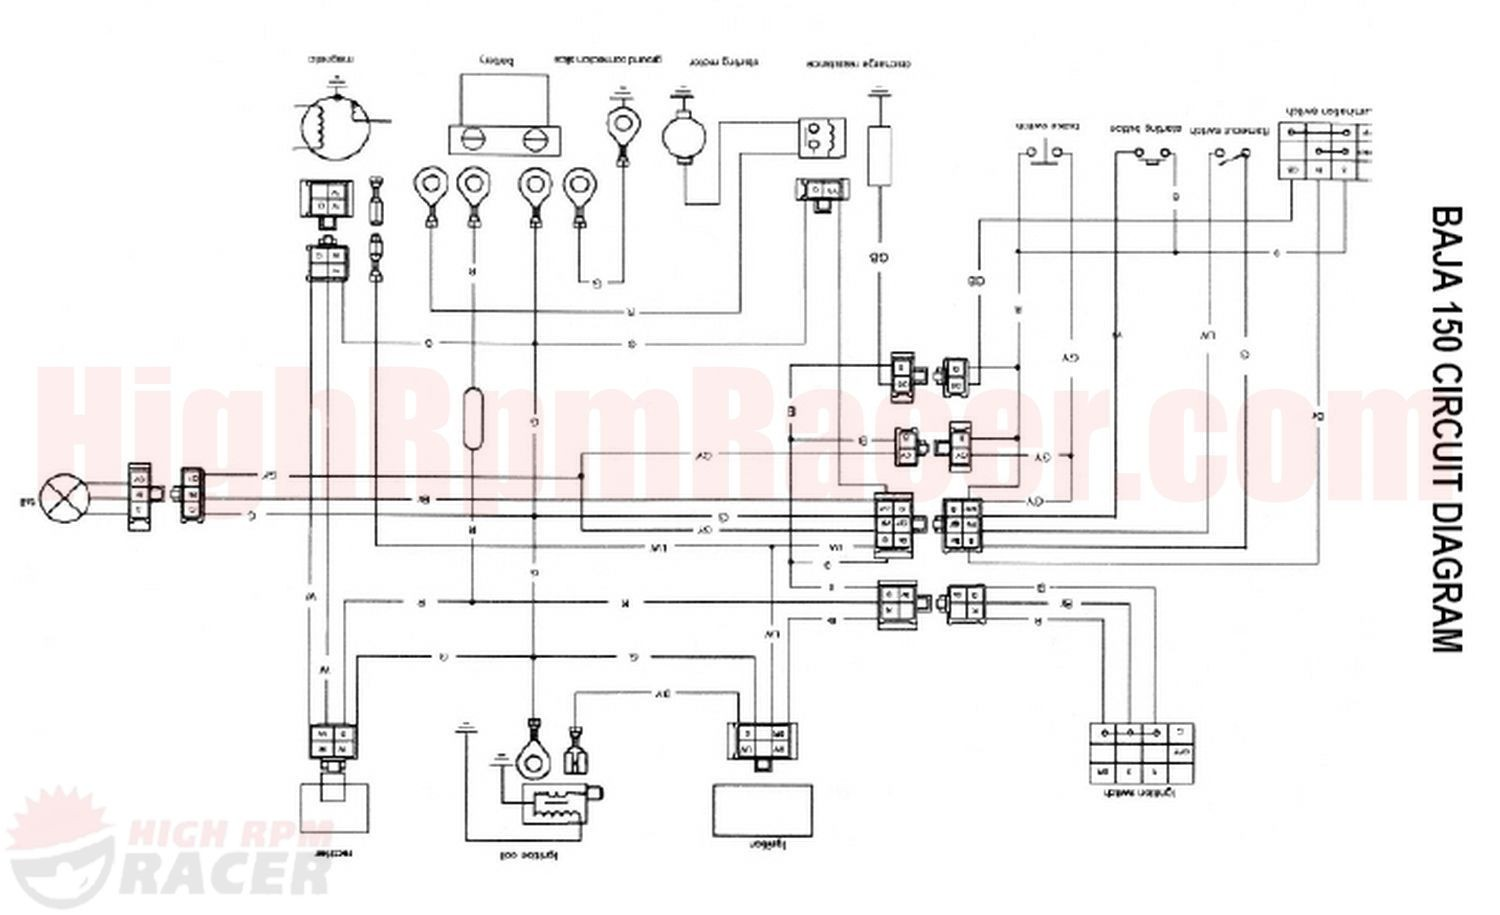 50cc Wiring Kazuma Diagram Atv Lwoxcm | Wiring Diagram on